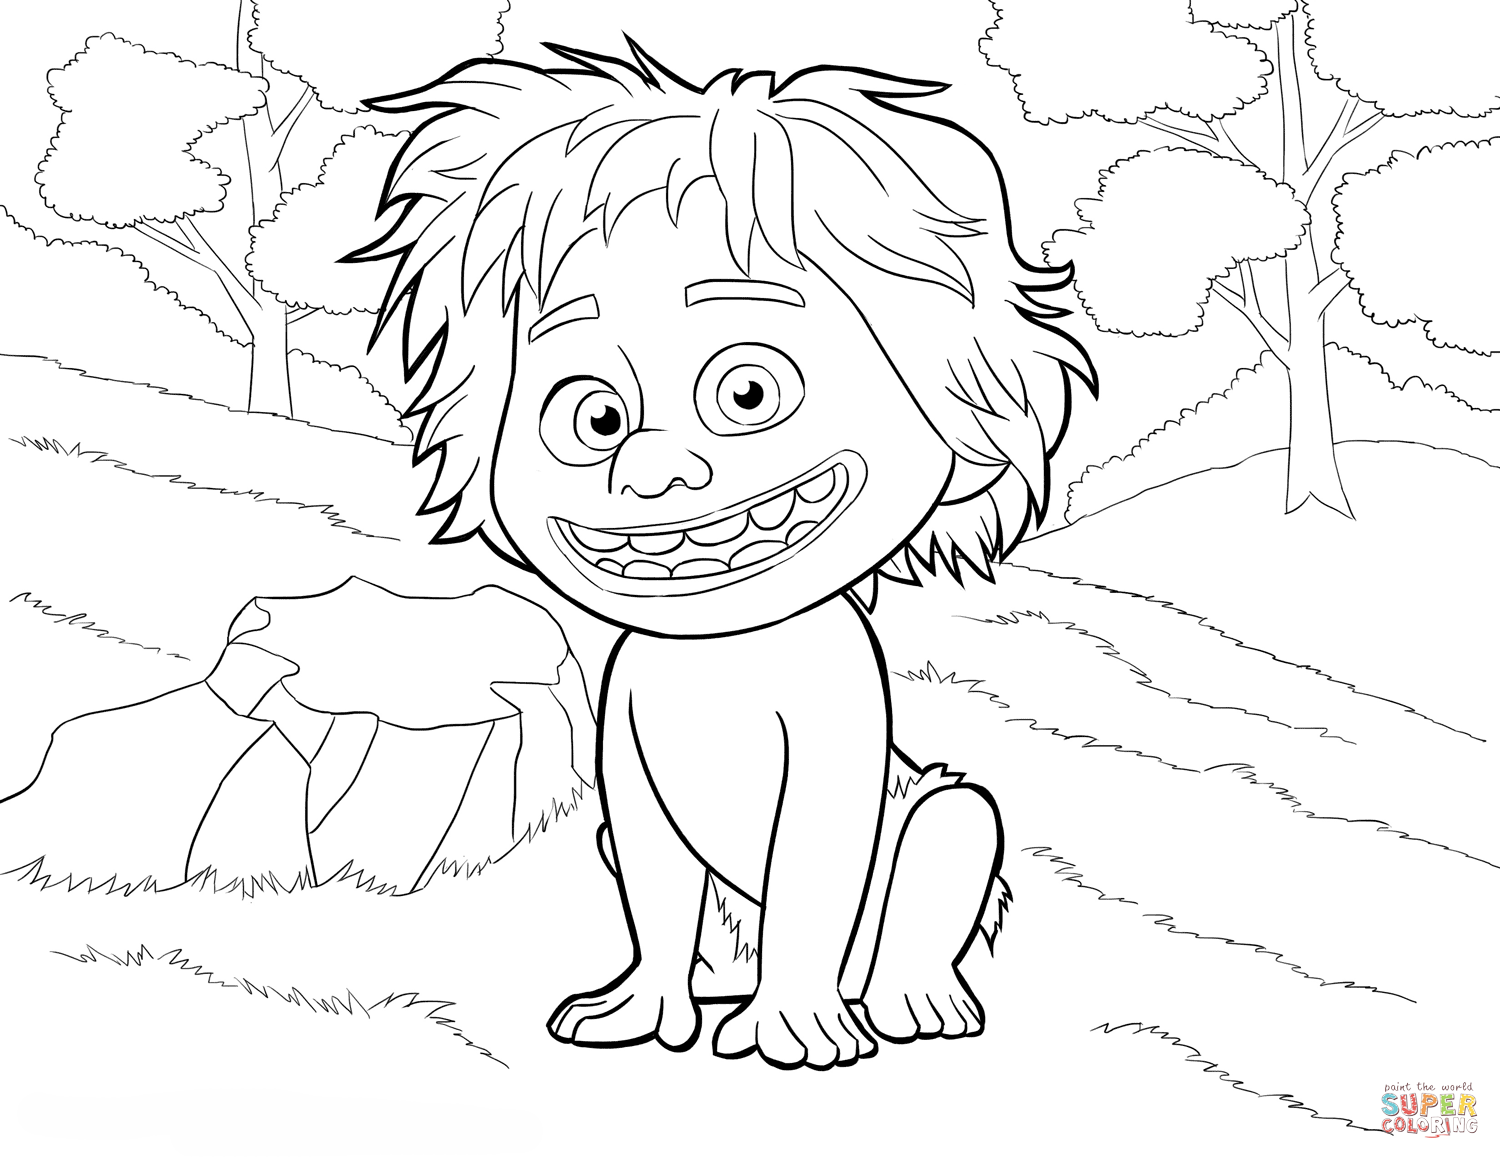 Spot From The Good Dinosaur Coloring Page